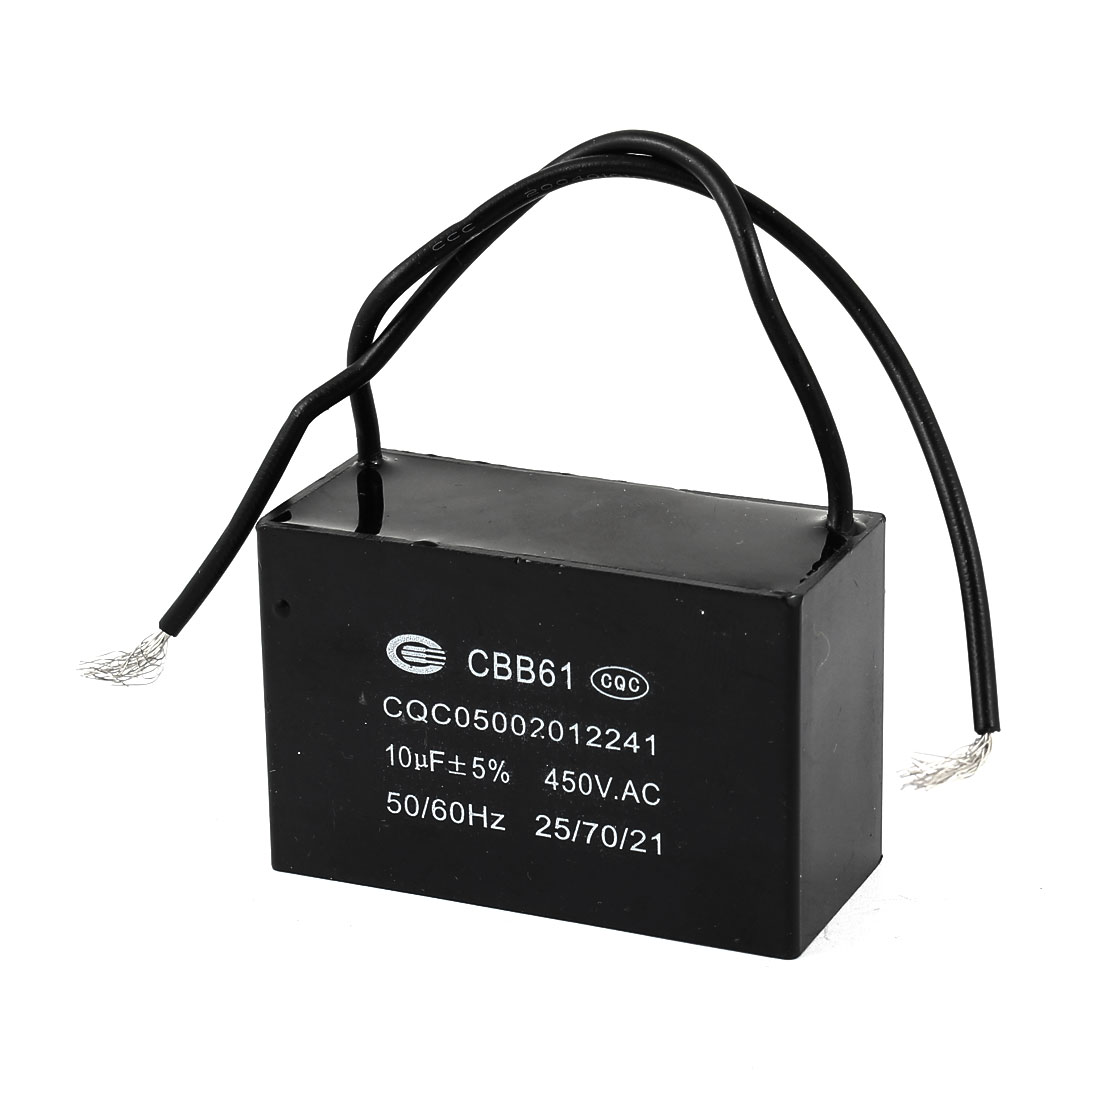 Black Housing CBB61 10uF 50/60 Hz Wire Motor Run Capacitor AC 450V